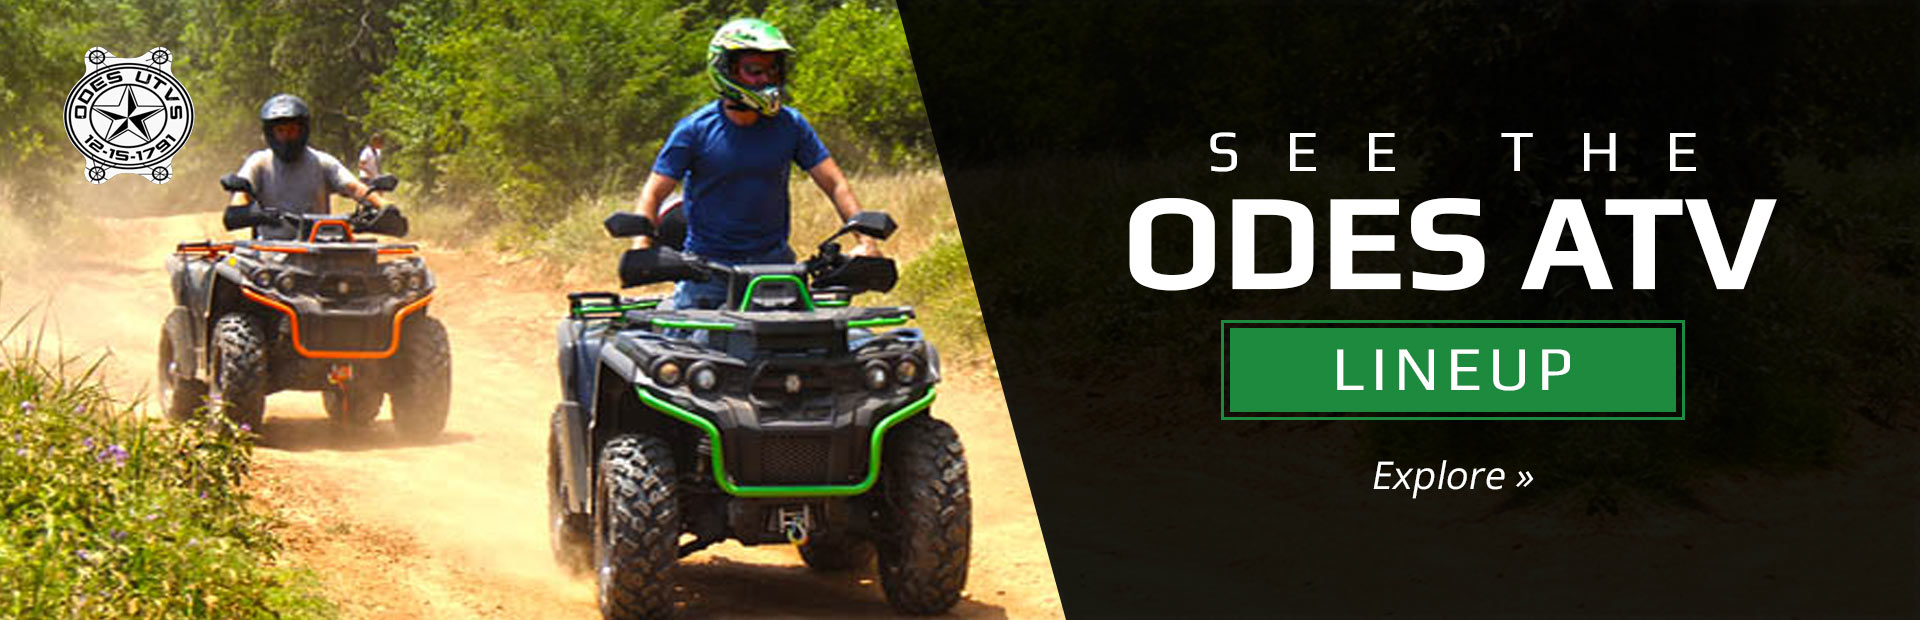 2019 ODES ATVs: Click here to view the models.